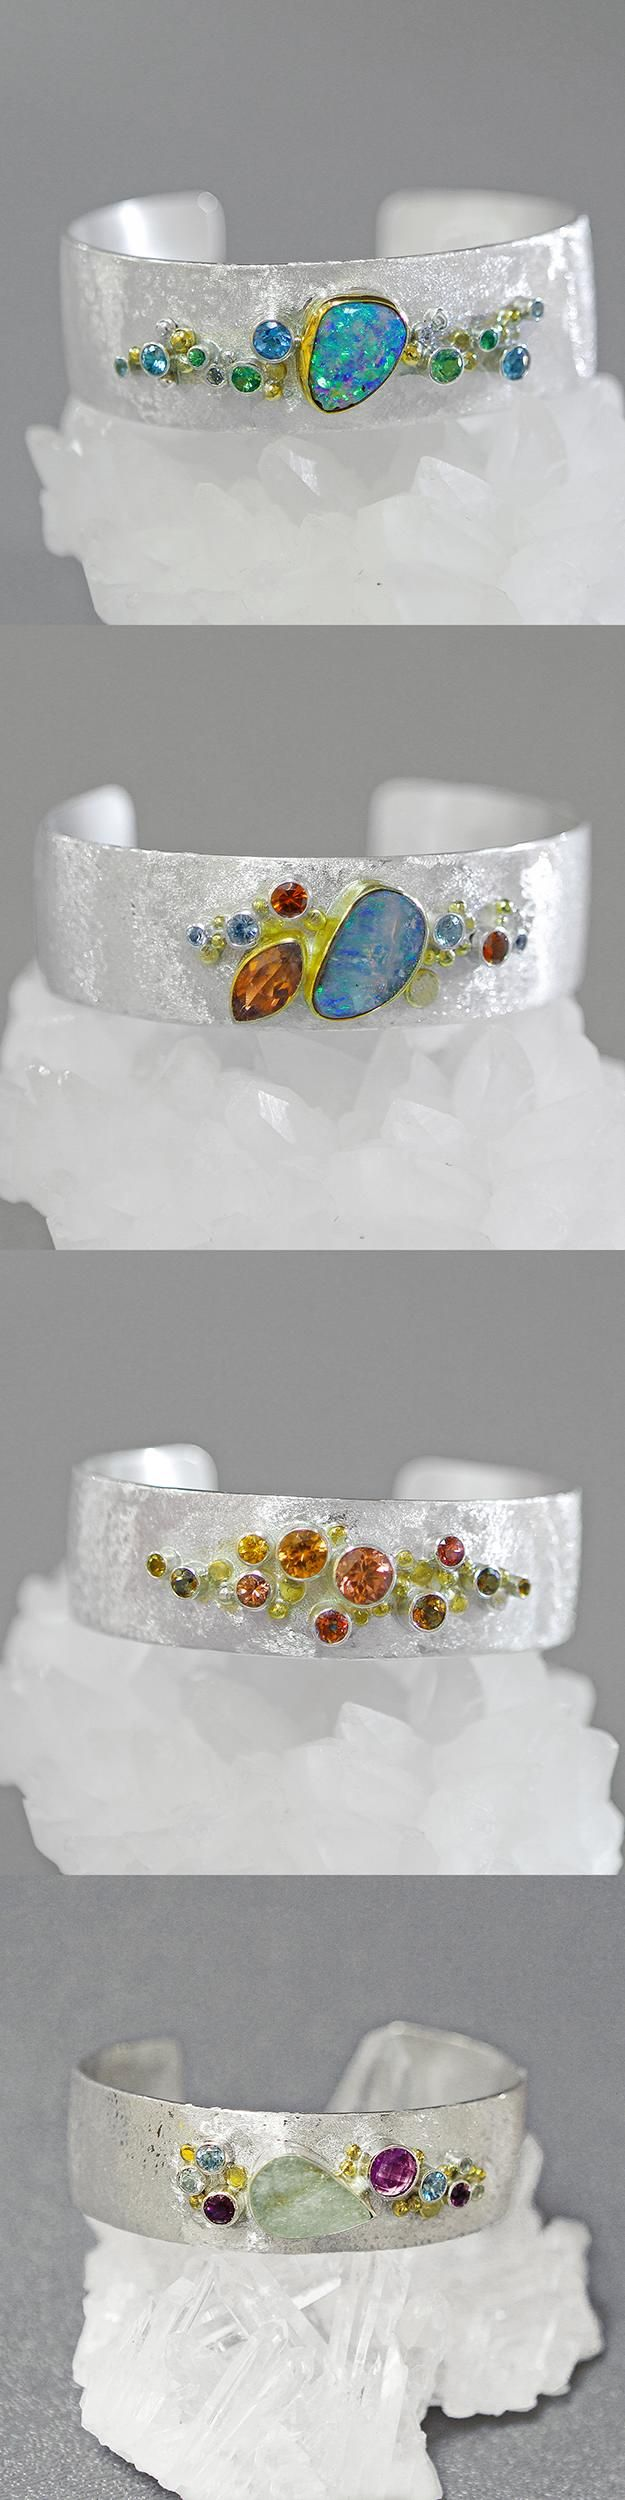 Not sure Id have the patience for all the bezel setting, but loving the mix of stones and silver on this cuff. WOMEN'S JEWELRY http://amzn.to/2ljp5IH